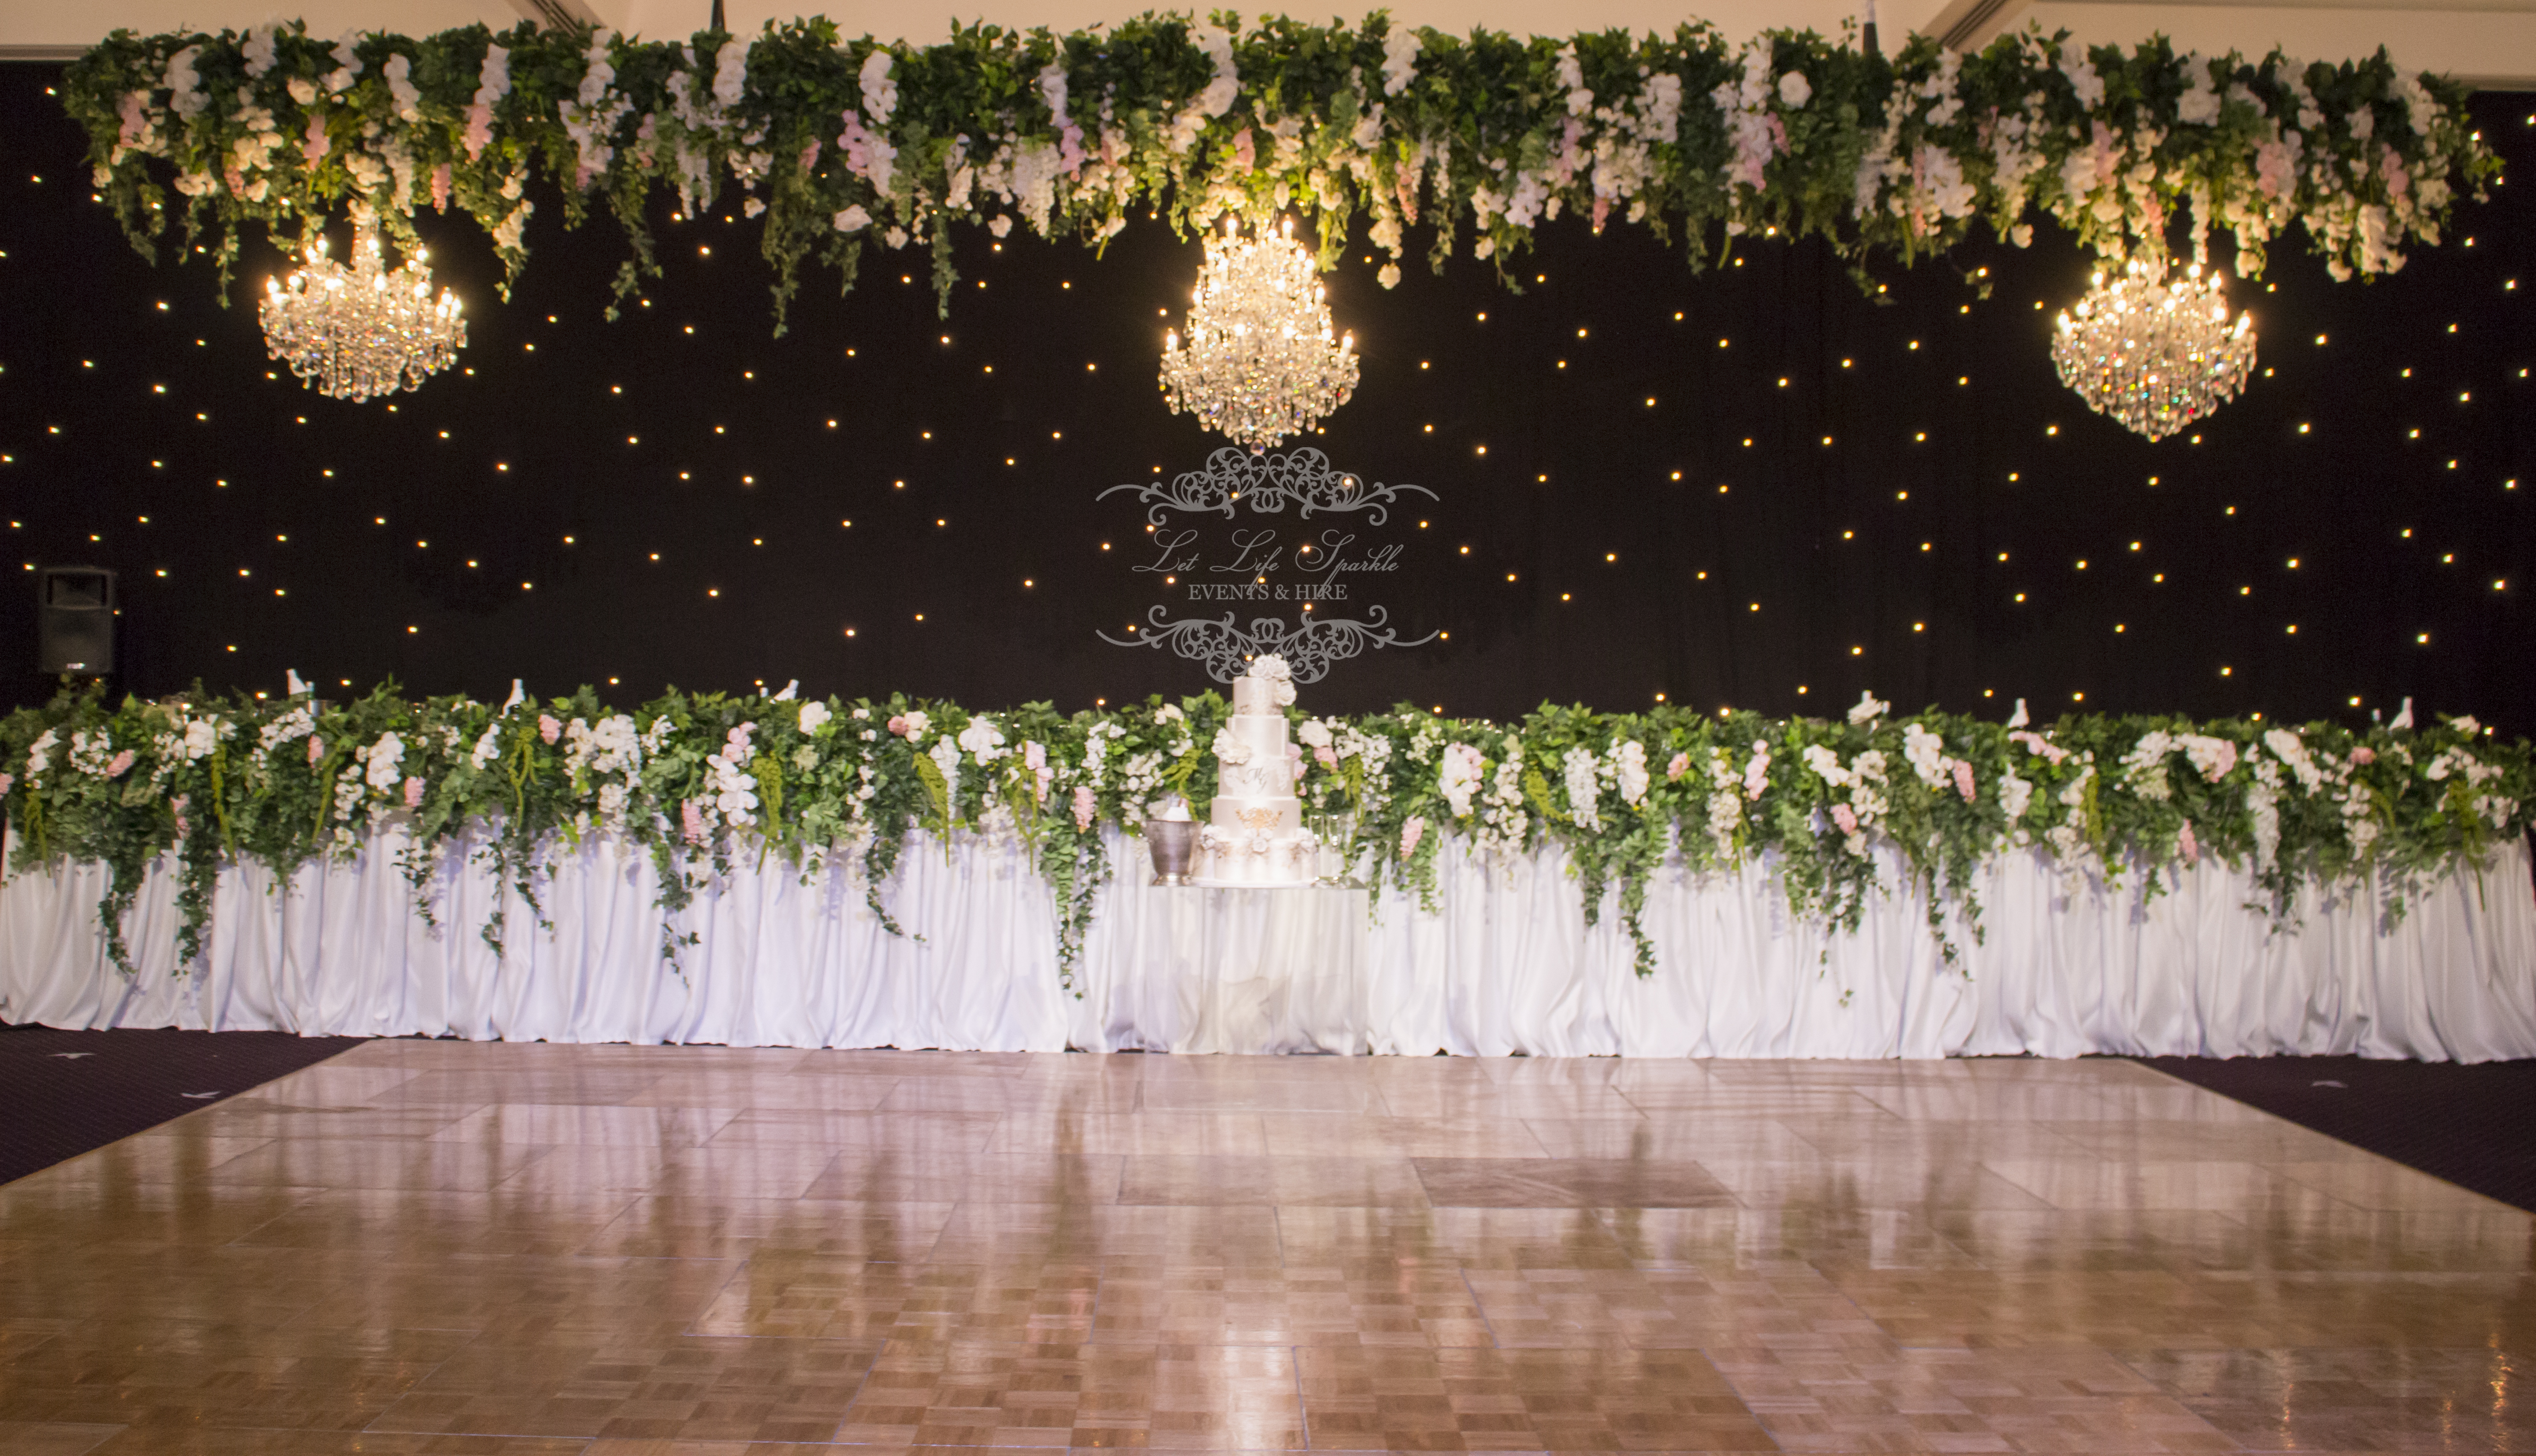 Chandeliers & Floral Ceiling Installation